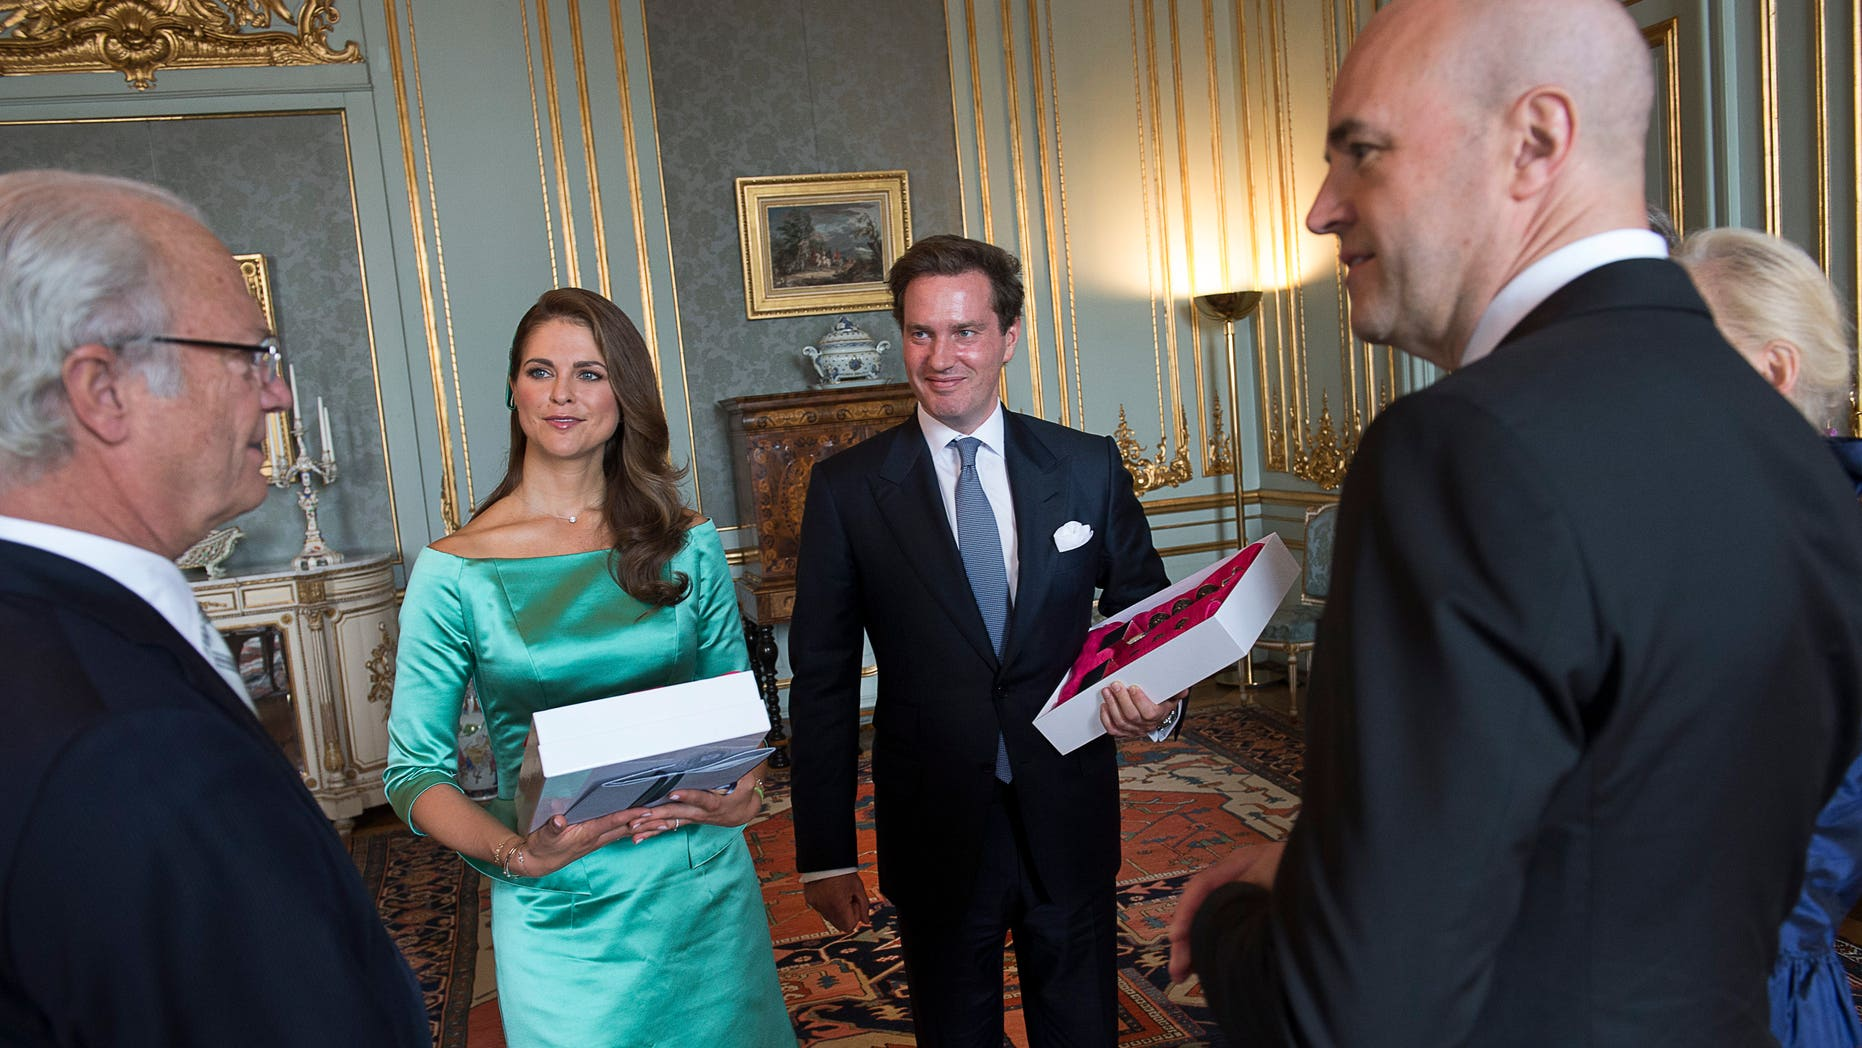 May 19, 2013: King Carl Gustaf of Sweden, left, and Swedish Prime Minister Fredrik Reinfeldt, right, congratulate Princess Madeleine and British American businessman Christopher O'Neill during the reception at the Royal Palace after the banns of marriage service for the couple, in the Royal Chapel in Stockholm, Sweden.